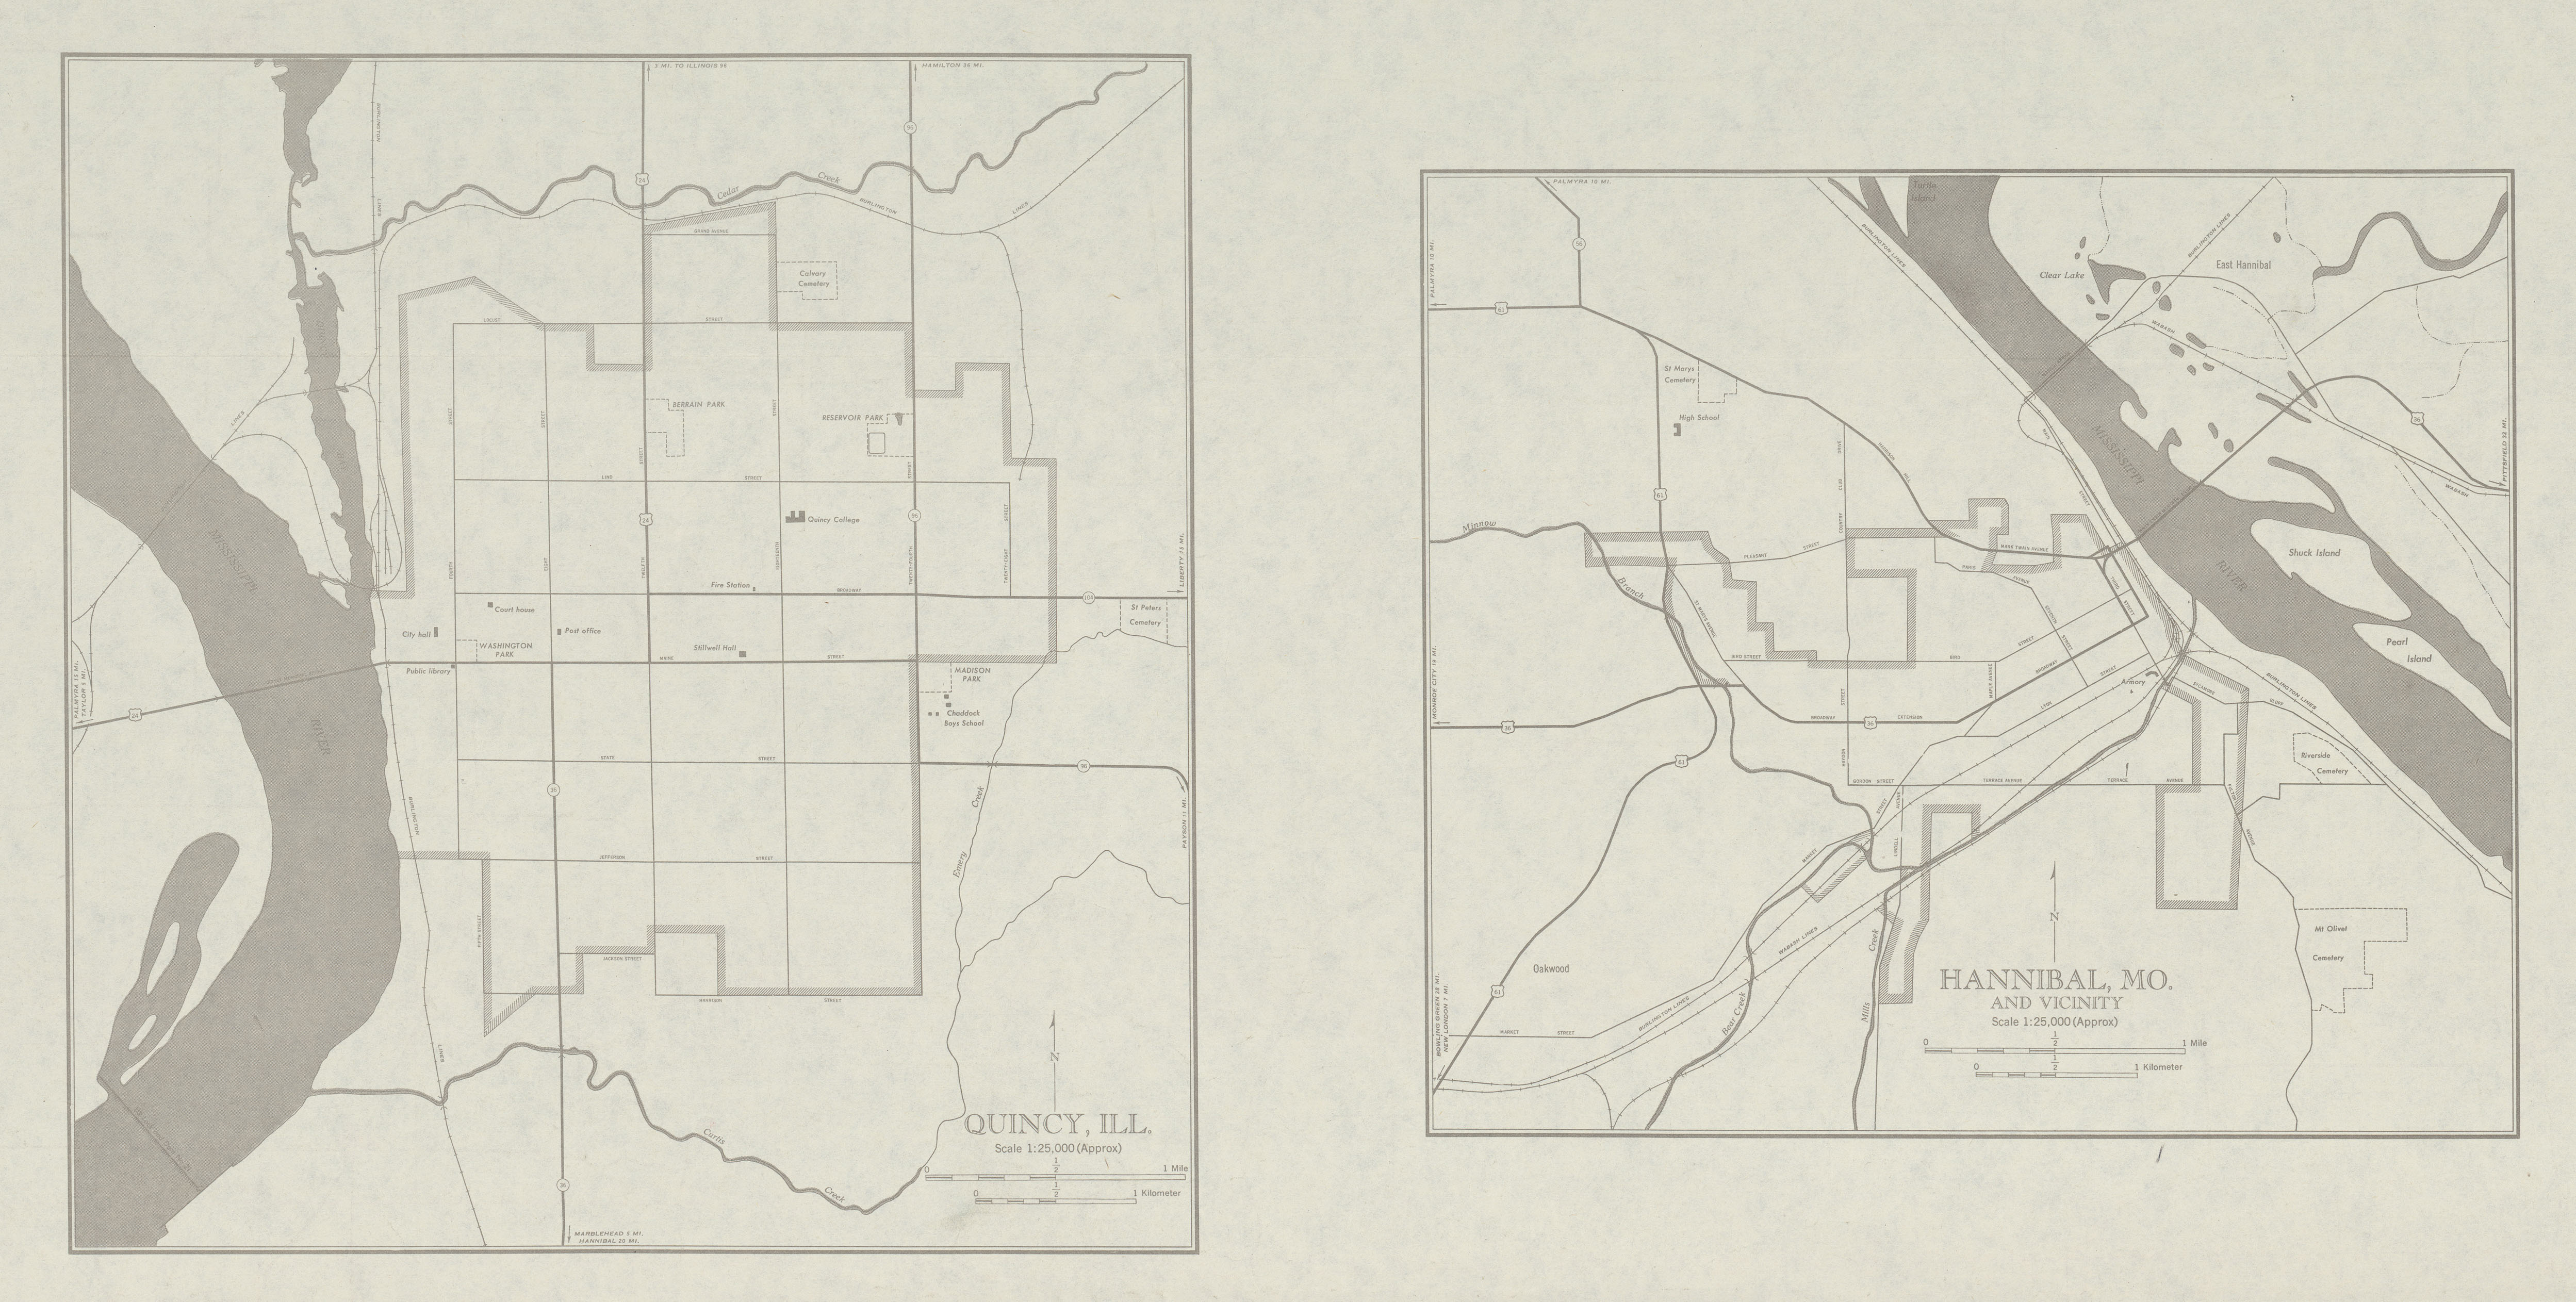 City Maps of Quincy, Illinois and Hannibal, Missouri, United States 1947